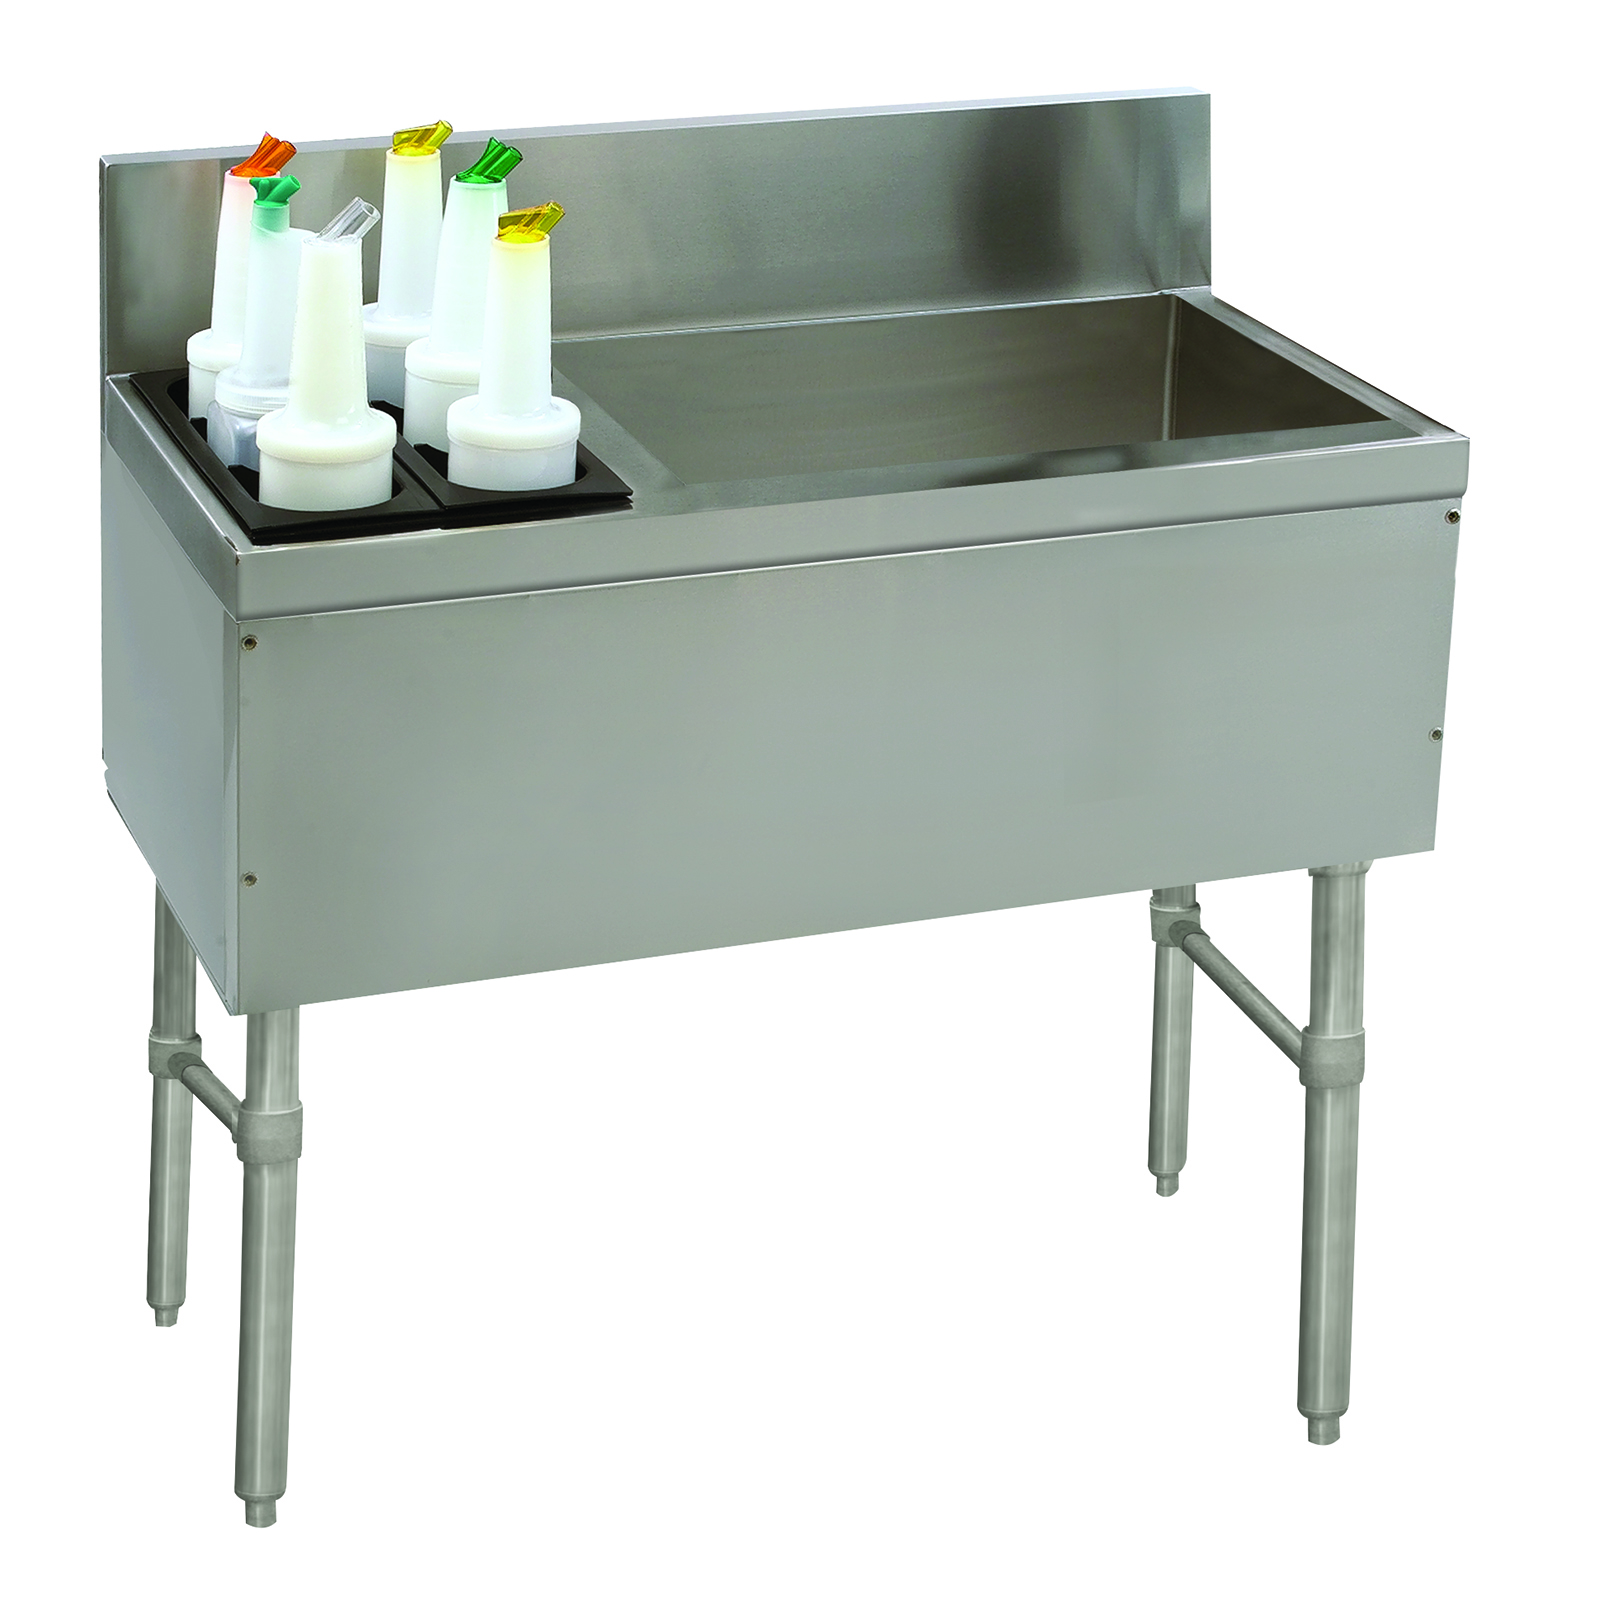 Advance Tabco PRC-19-42R-10 underbar ice bin/cocktail station, bottle well bin